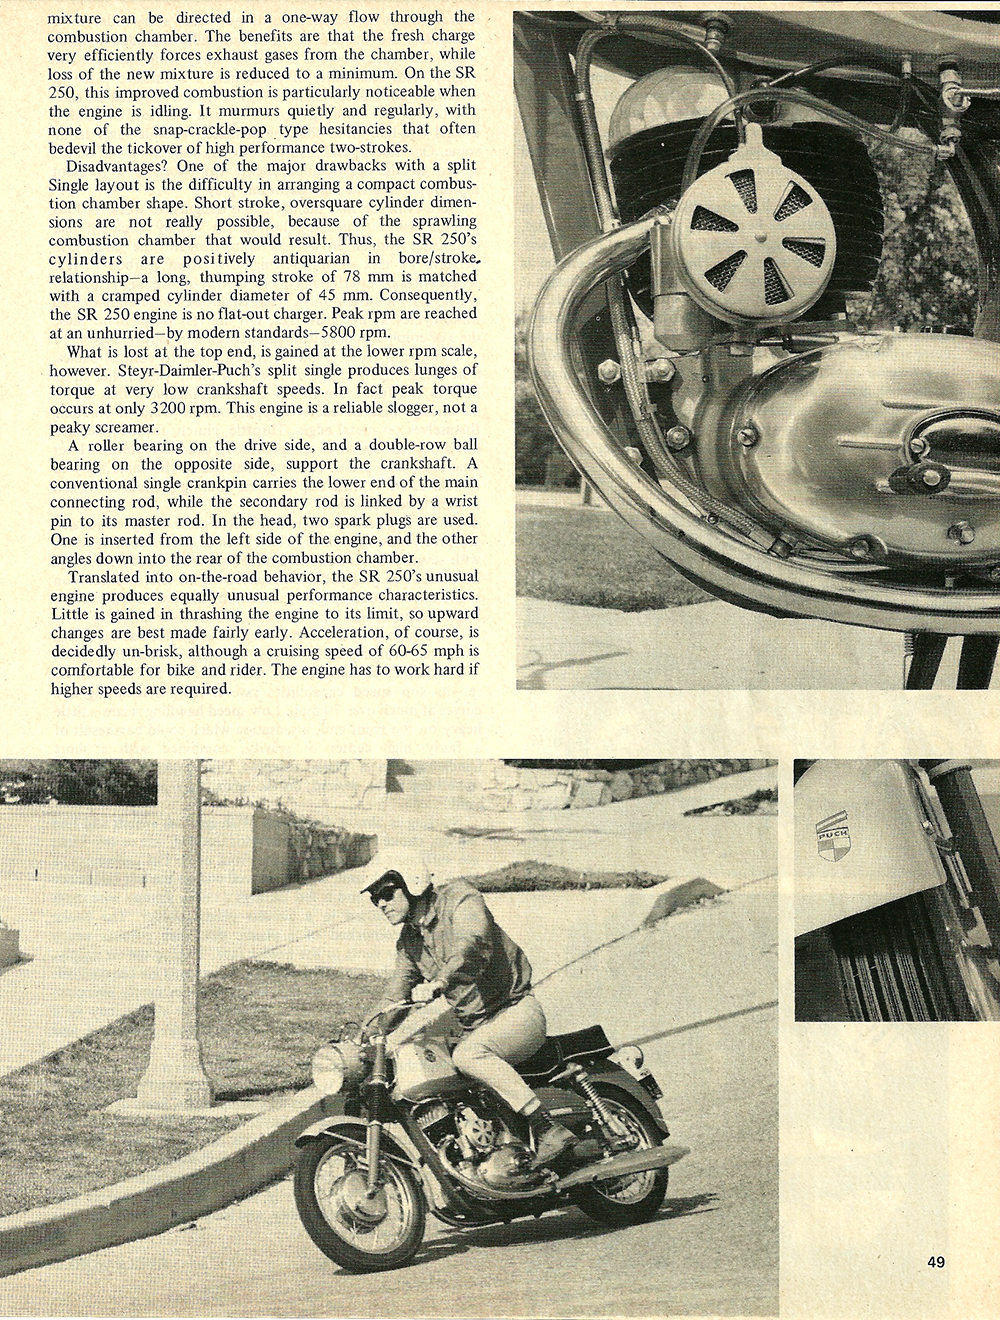 1968 Sears SR 250 road test 02.jpg